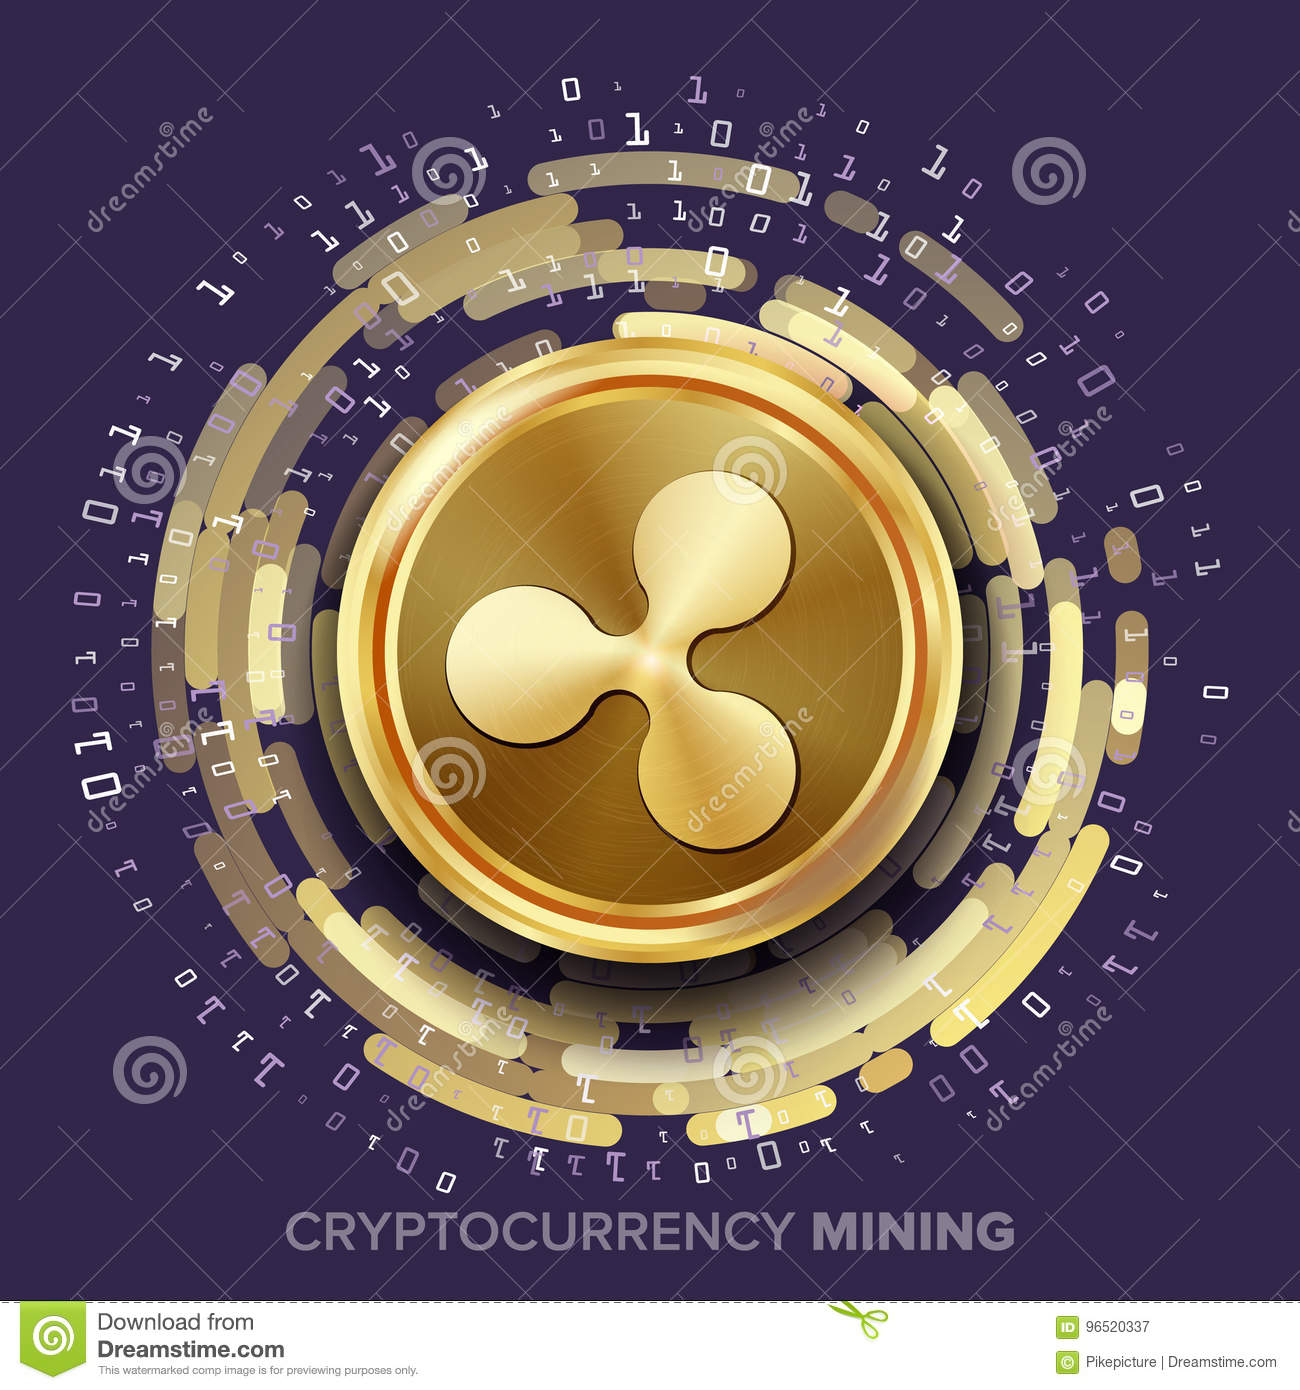 cryptocurrency mining converter